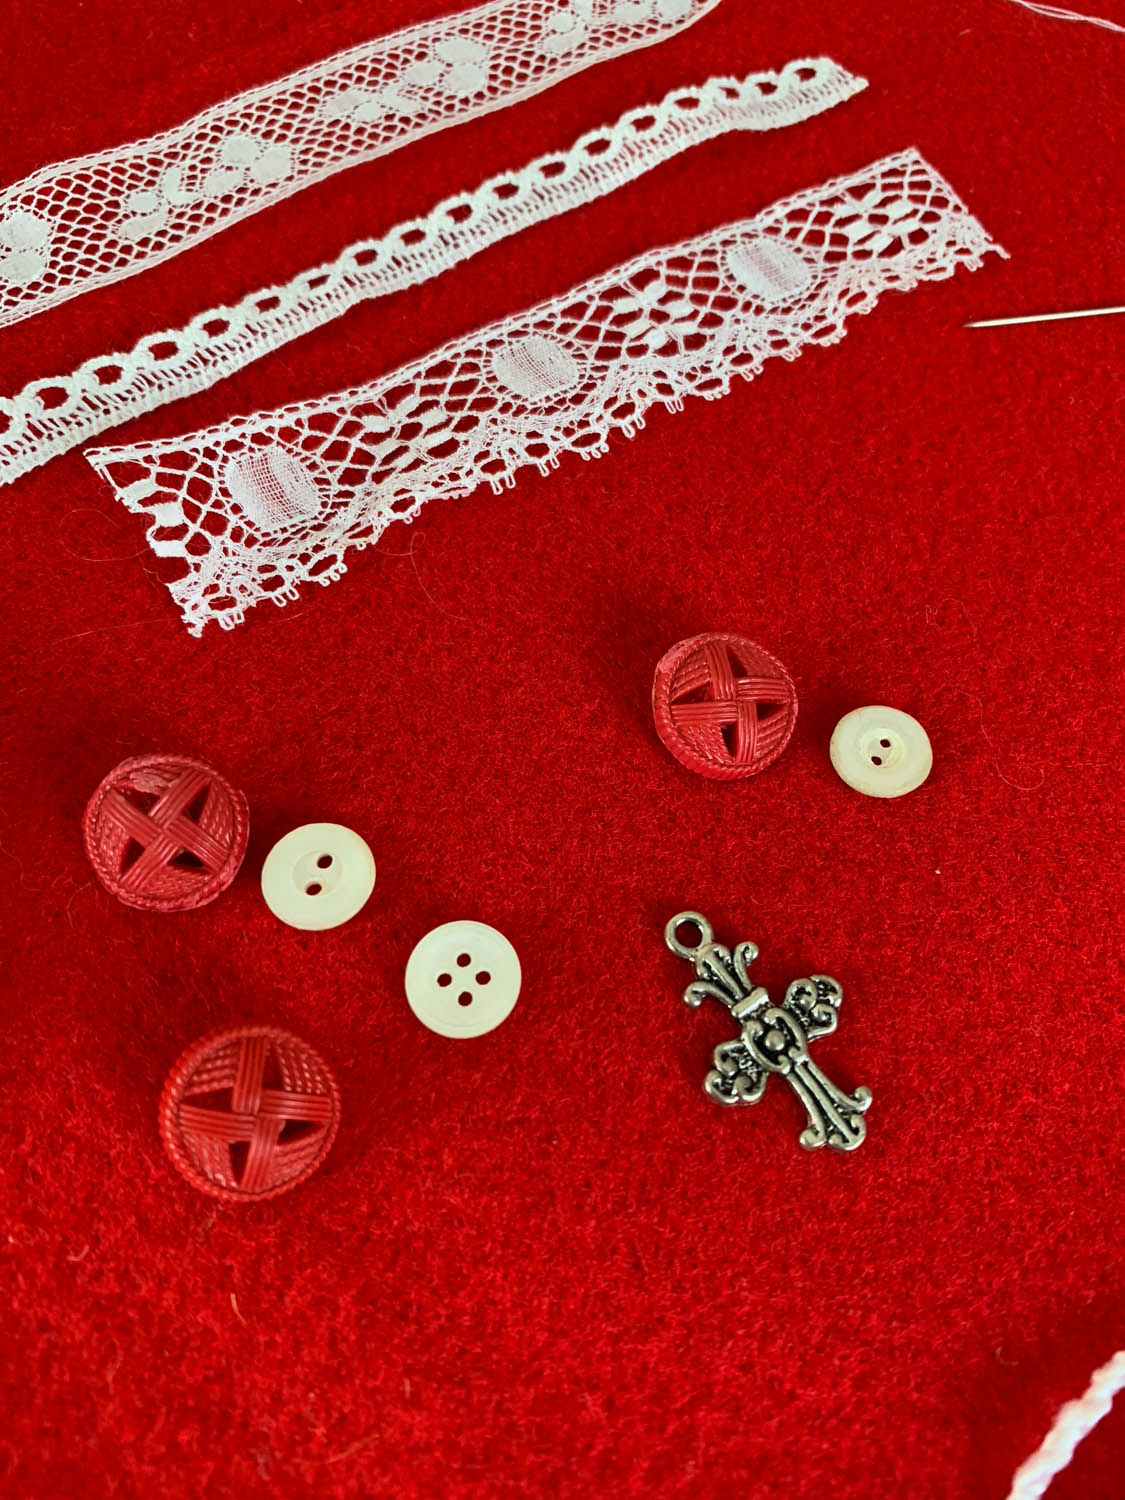 lace trims, buttons and charms atop red felt